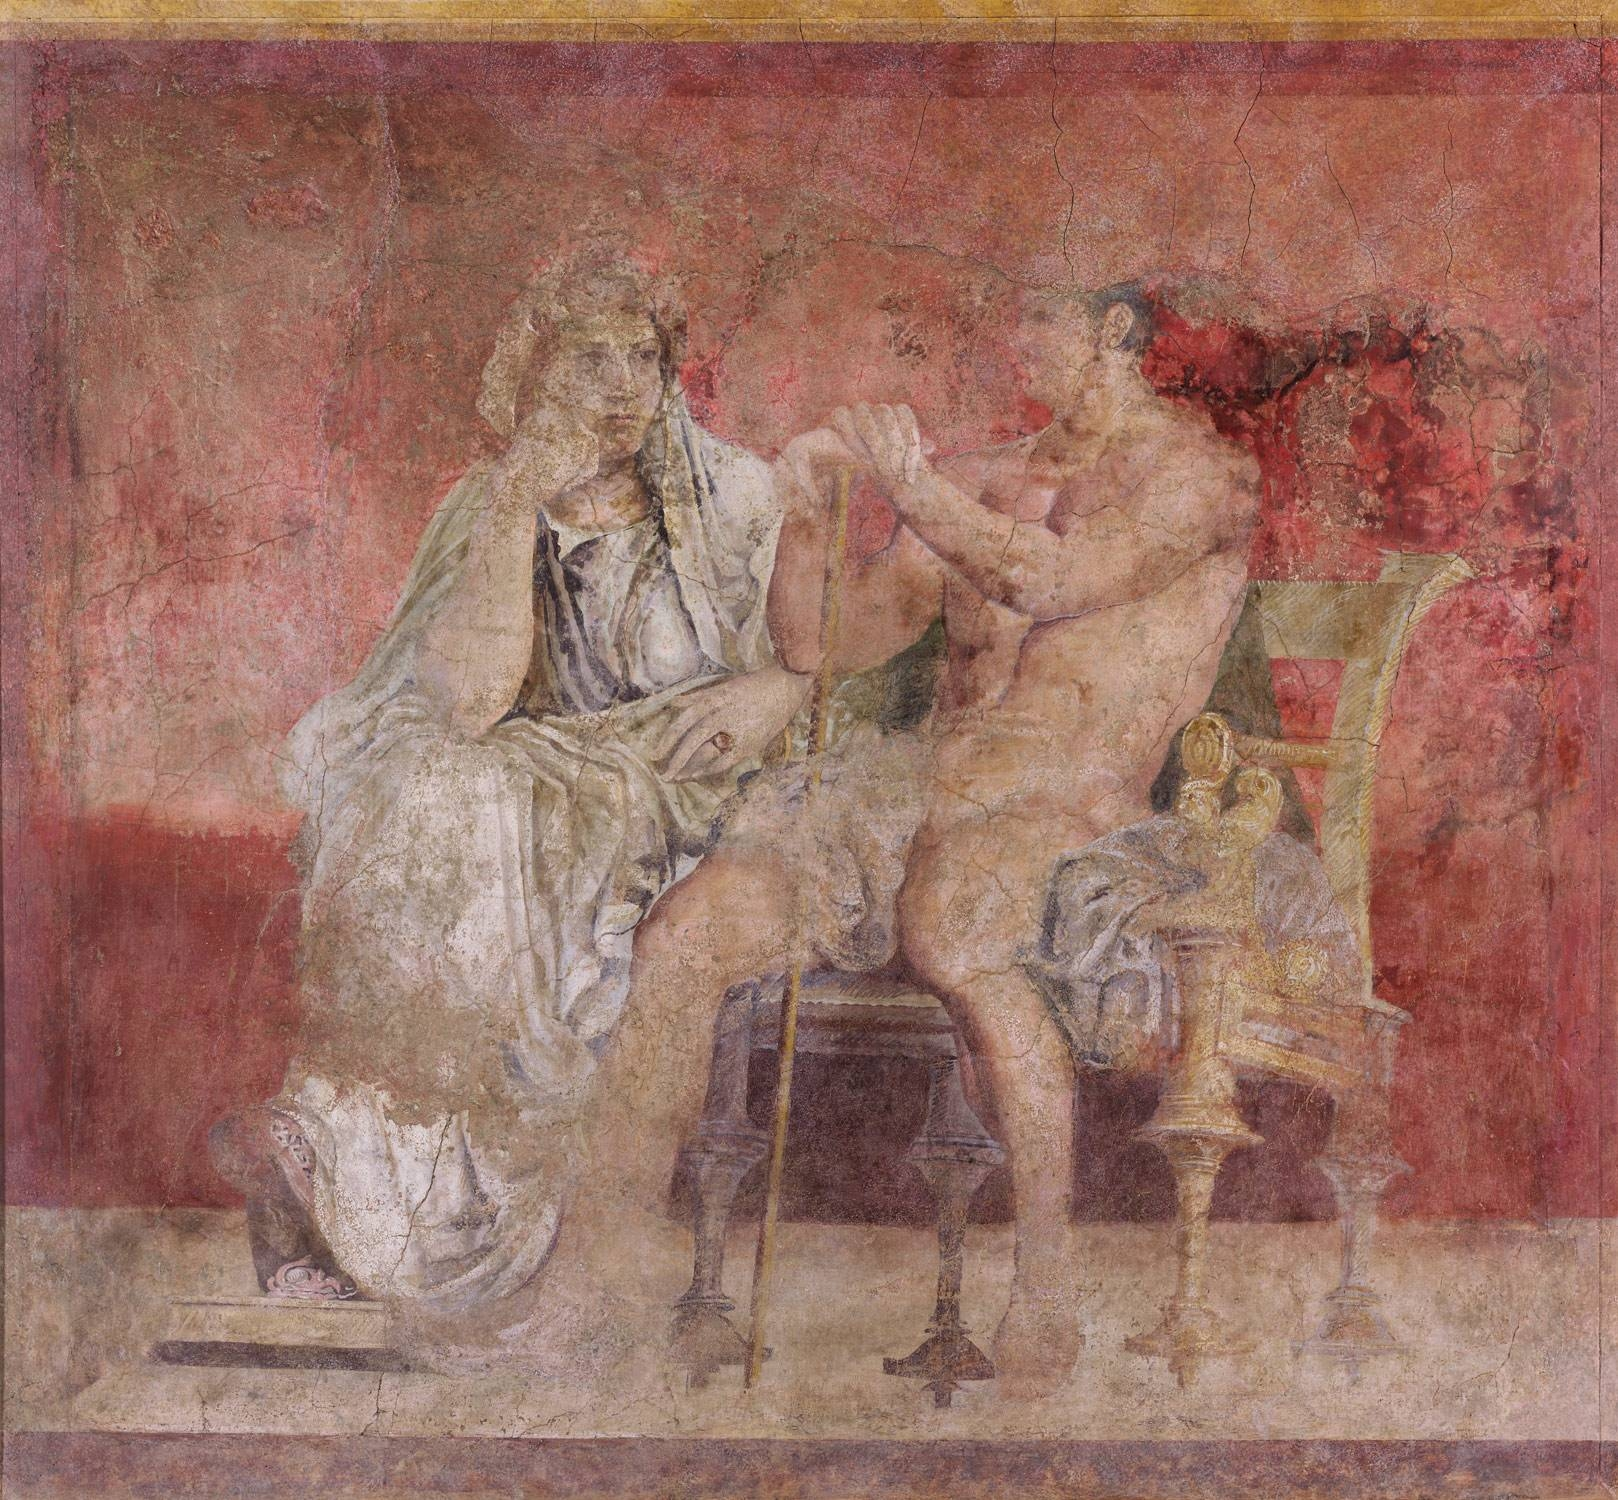 Wall Painting From Room H Of The Villa Of P (View 10 of 20)